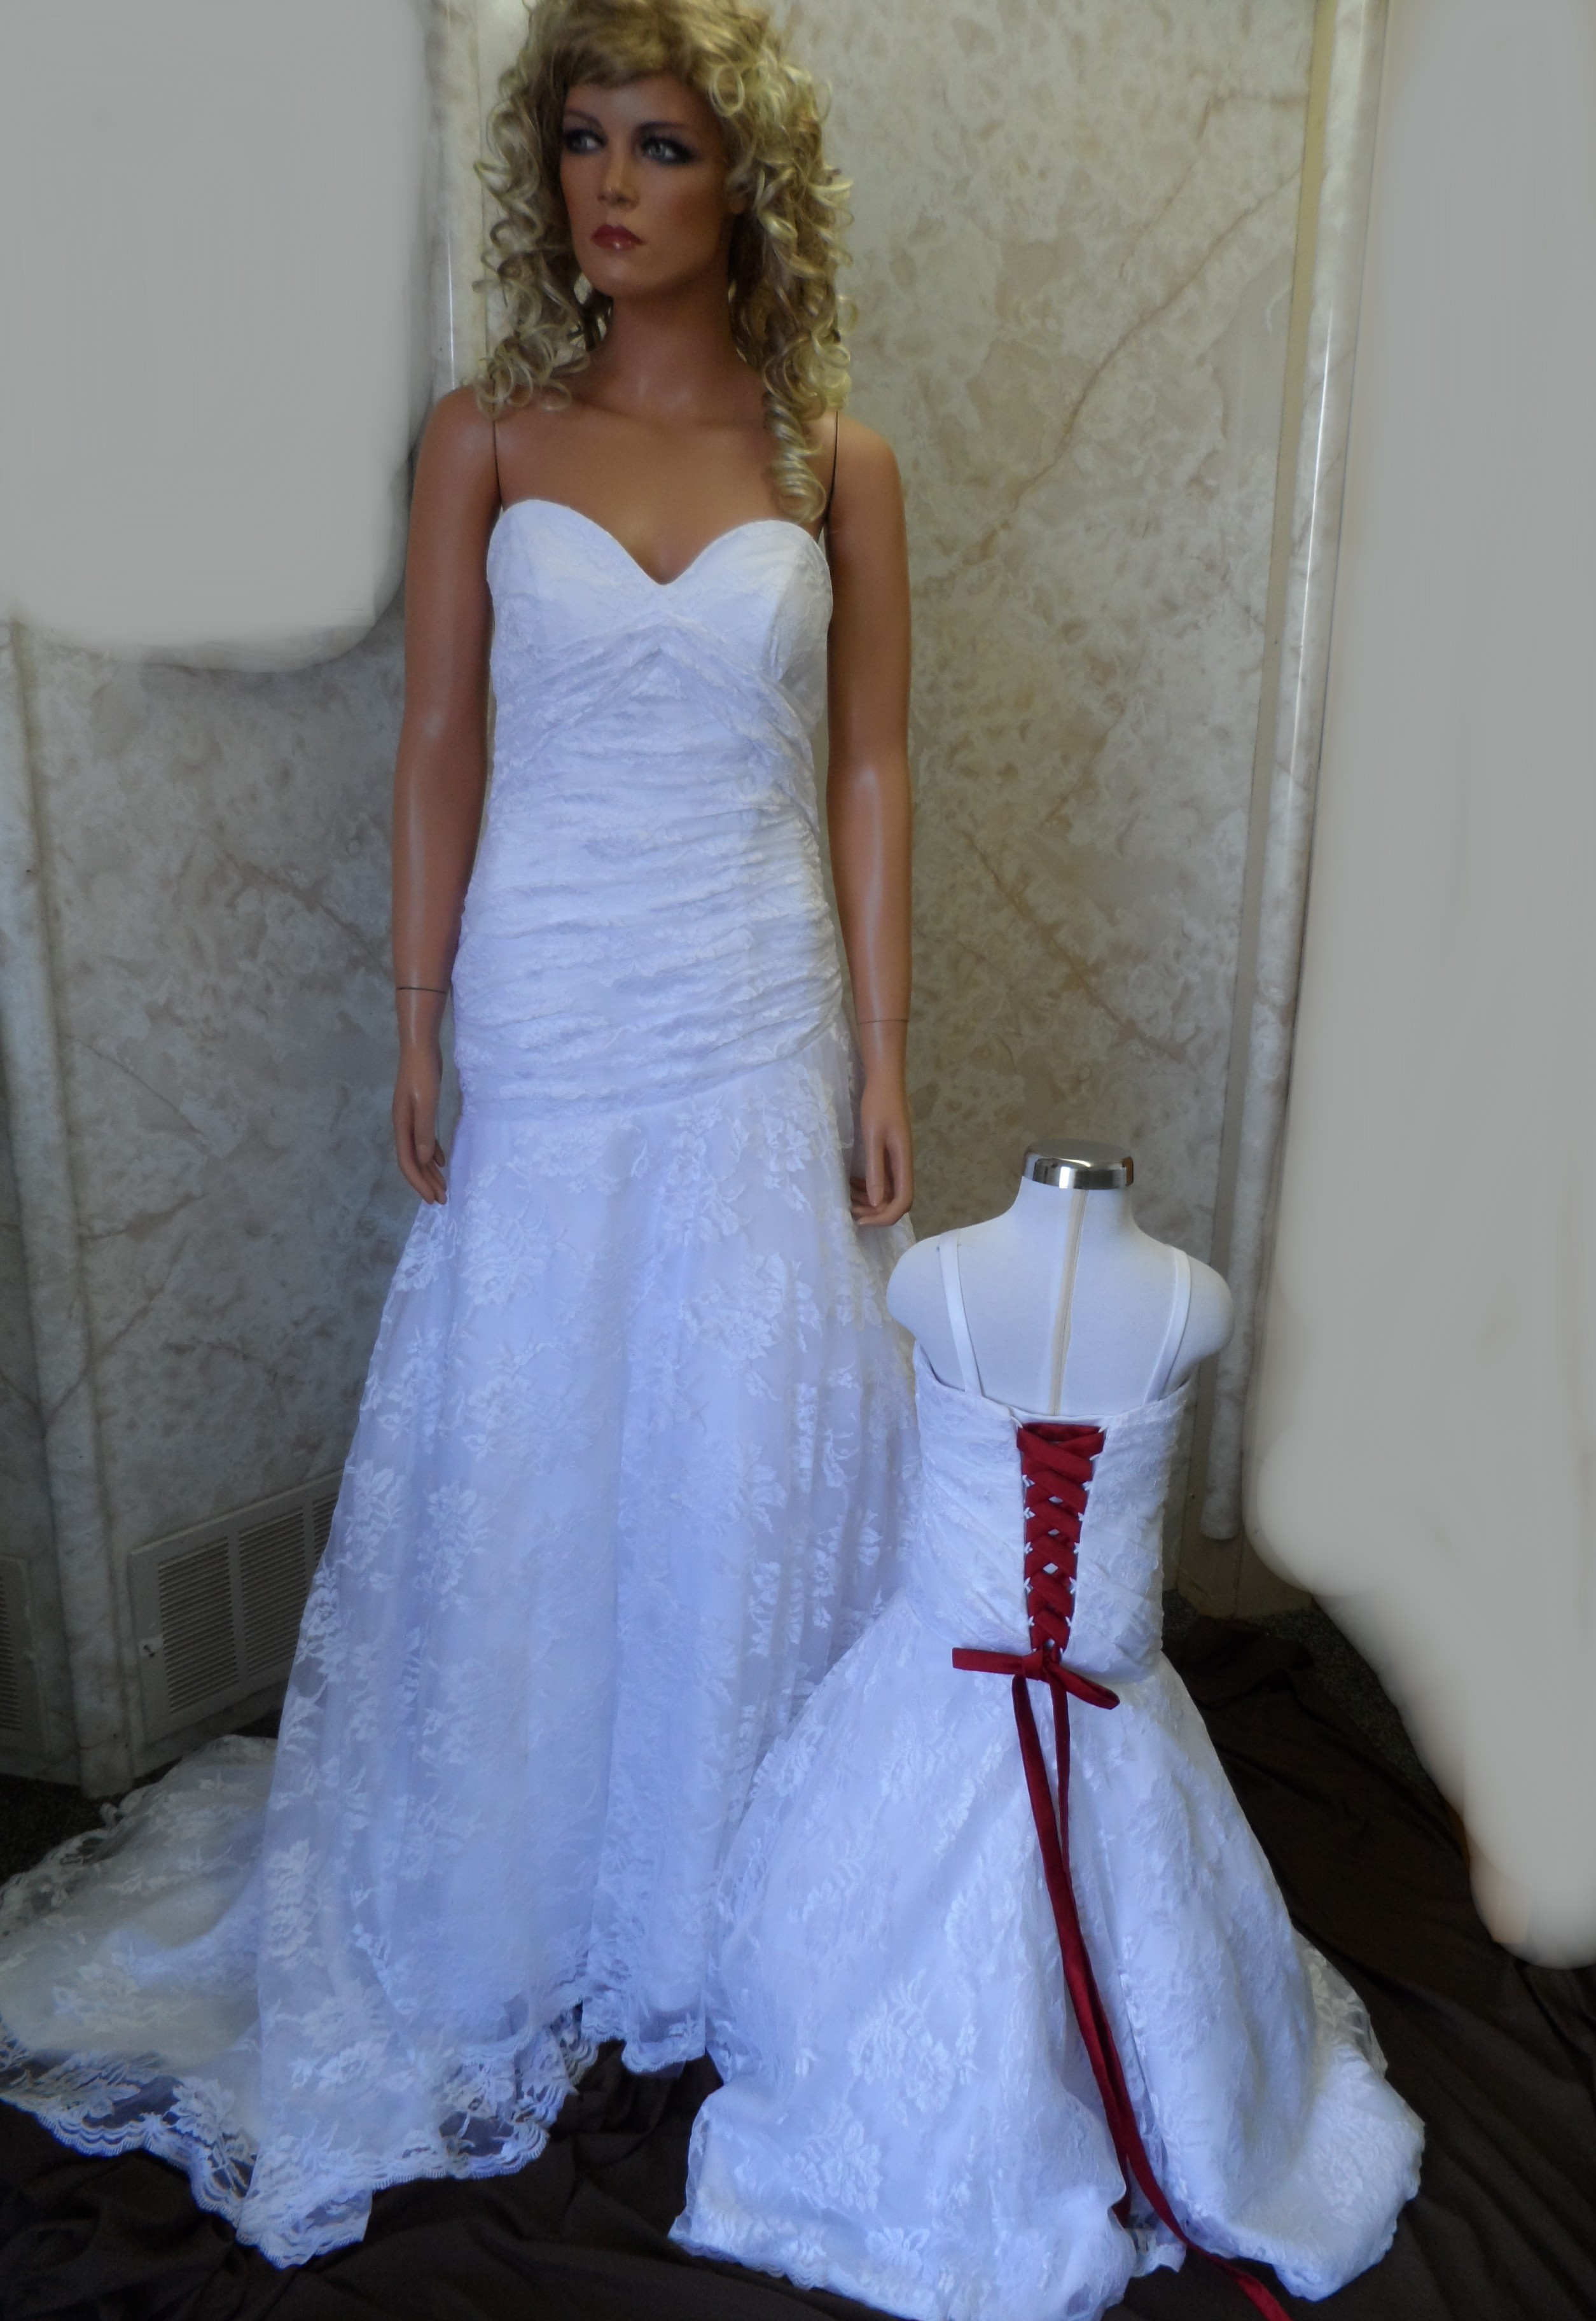 Lace Wedding Gown And Matching Flower Dress